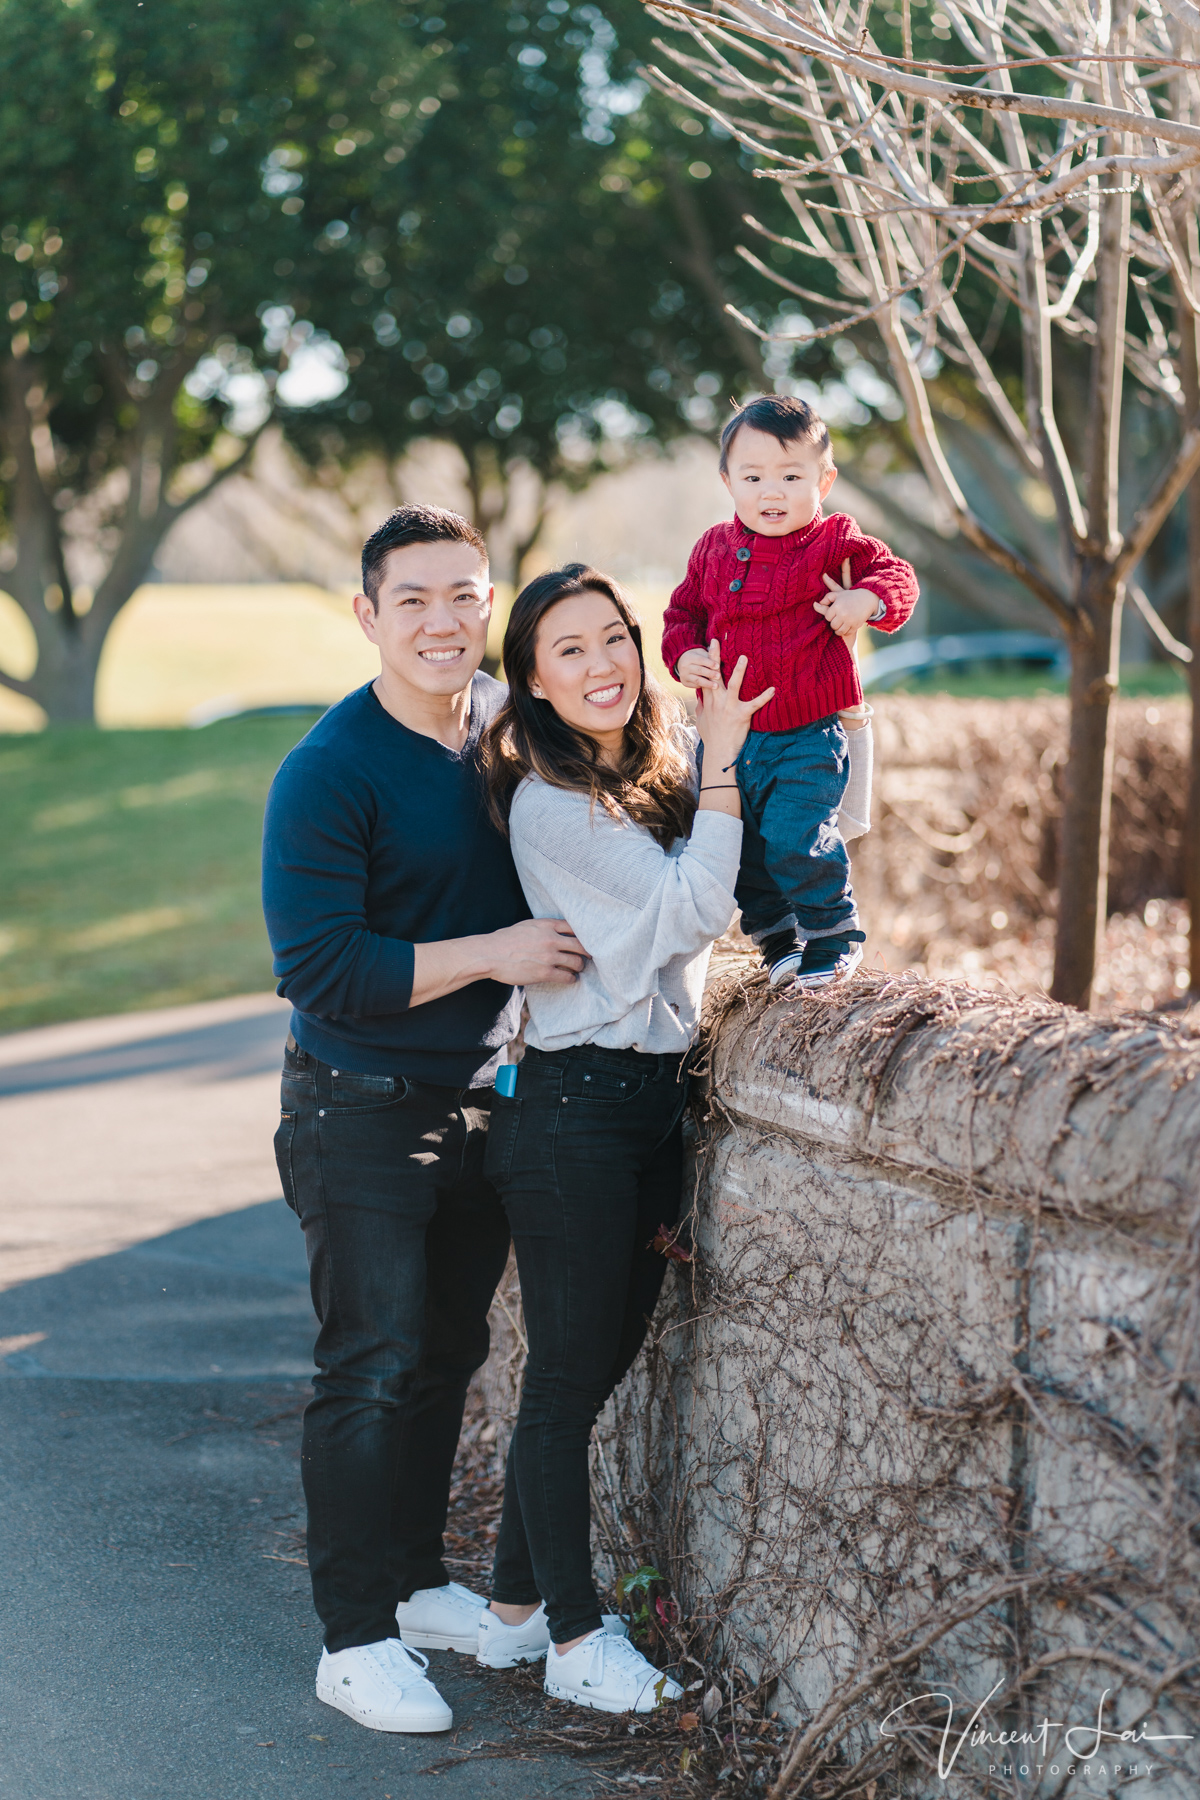 Winter Family Session at Bicentennial Park